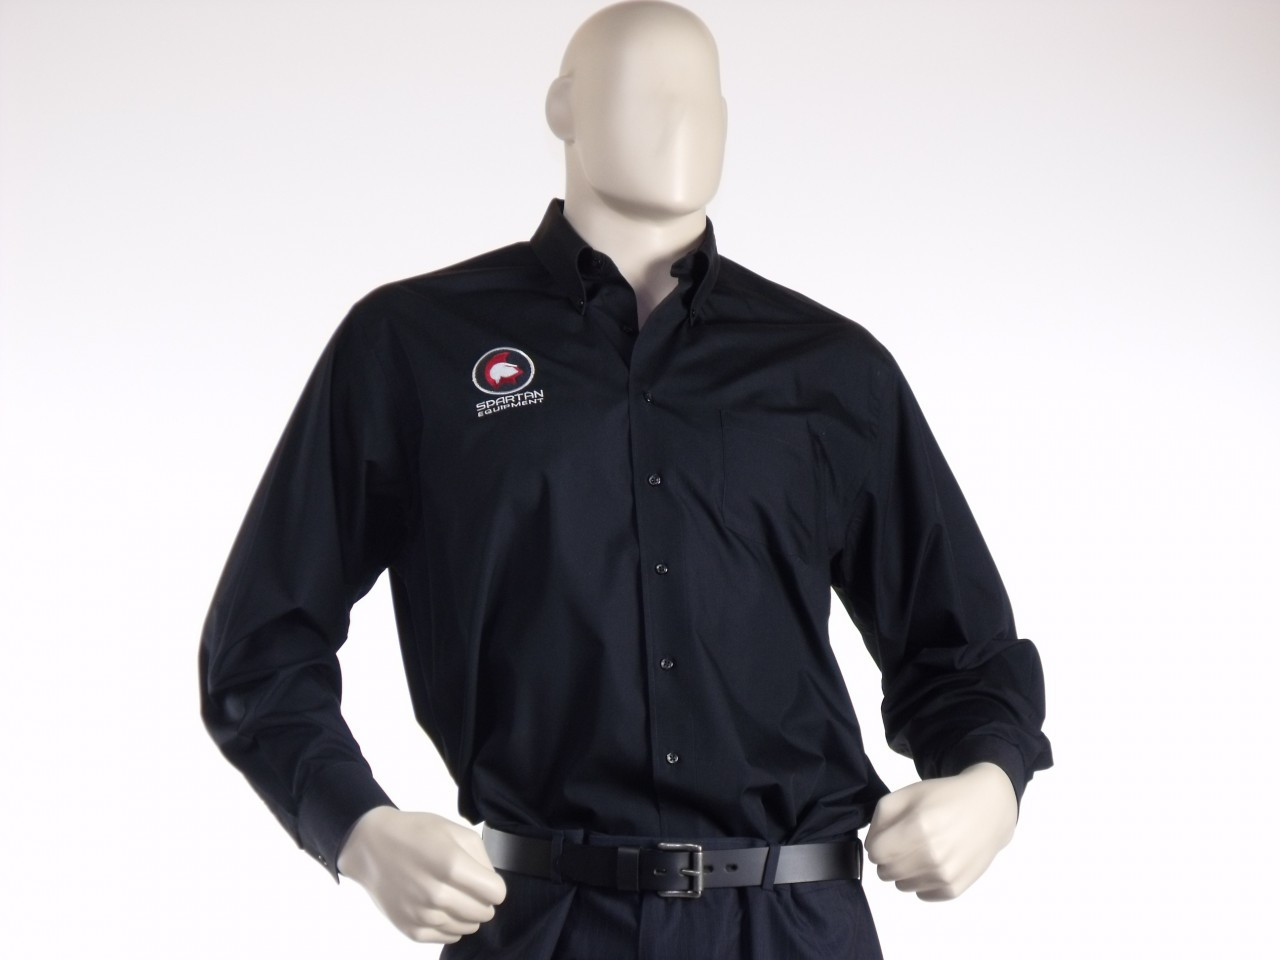 Spartan Dress Shirt Black